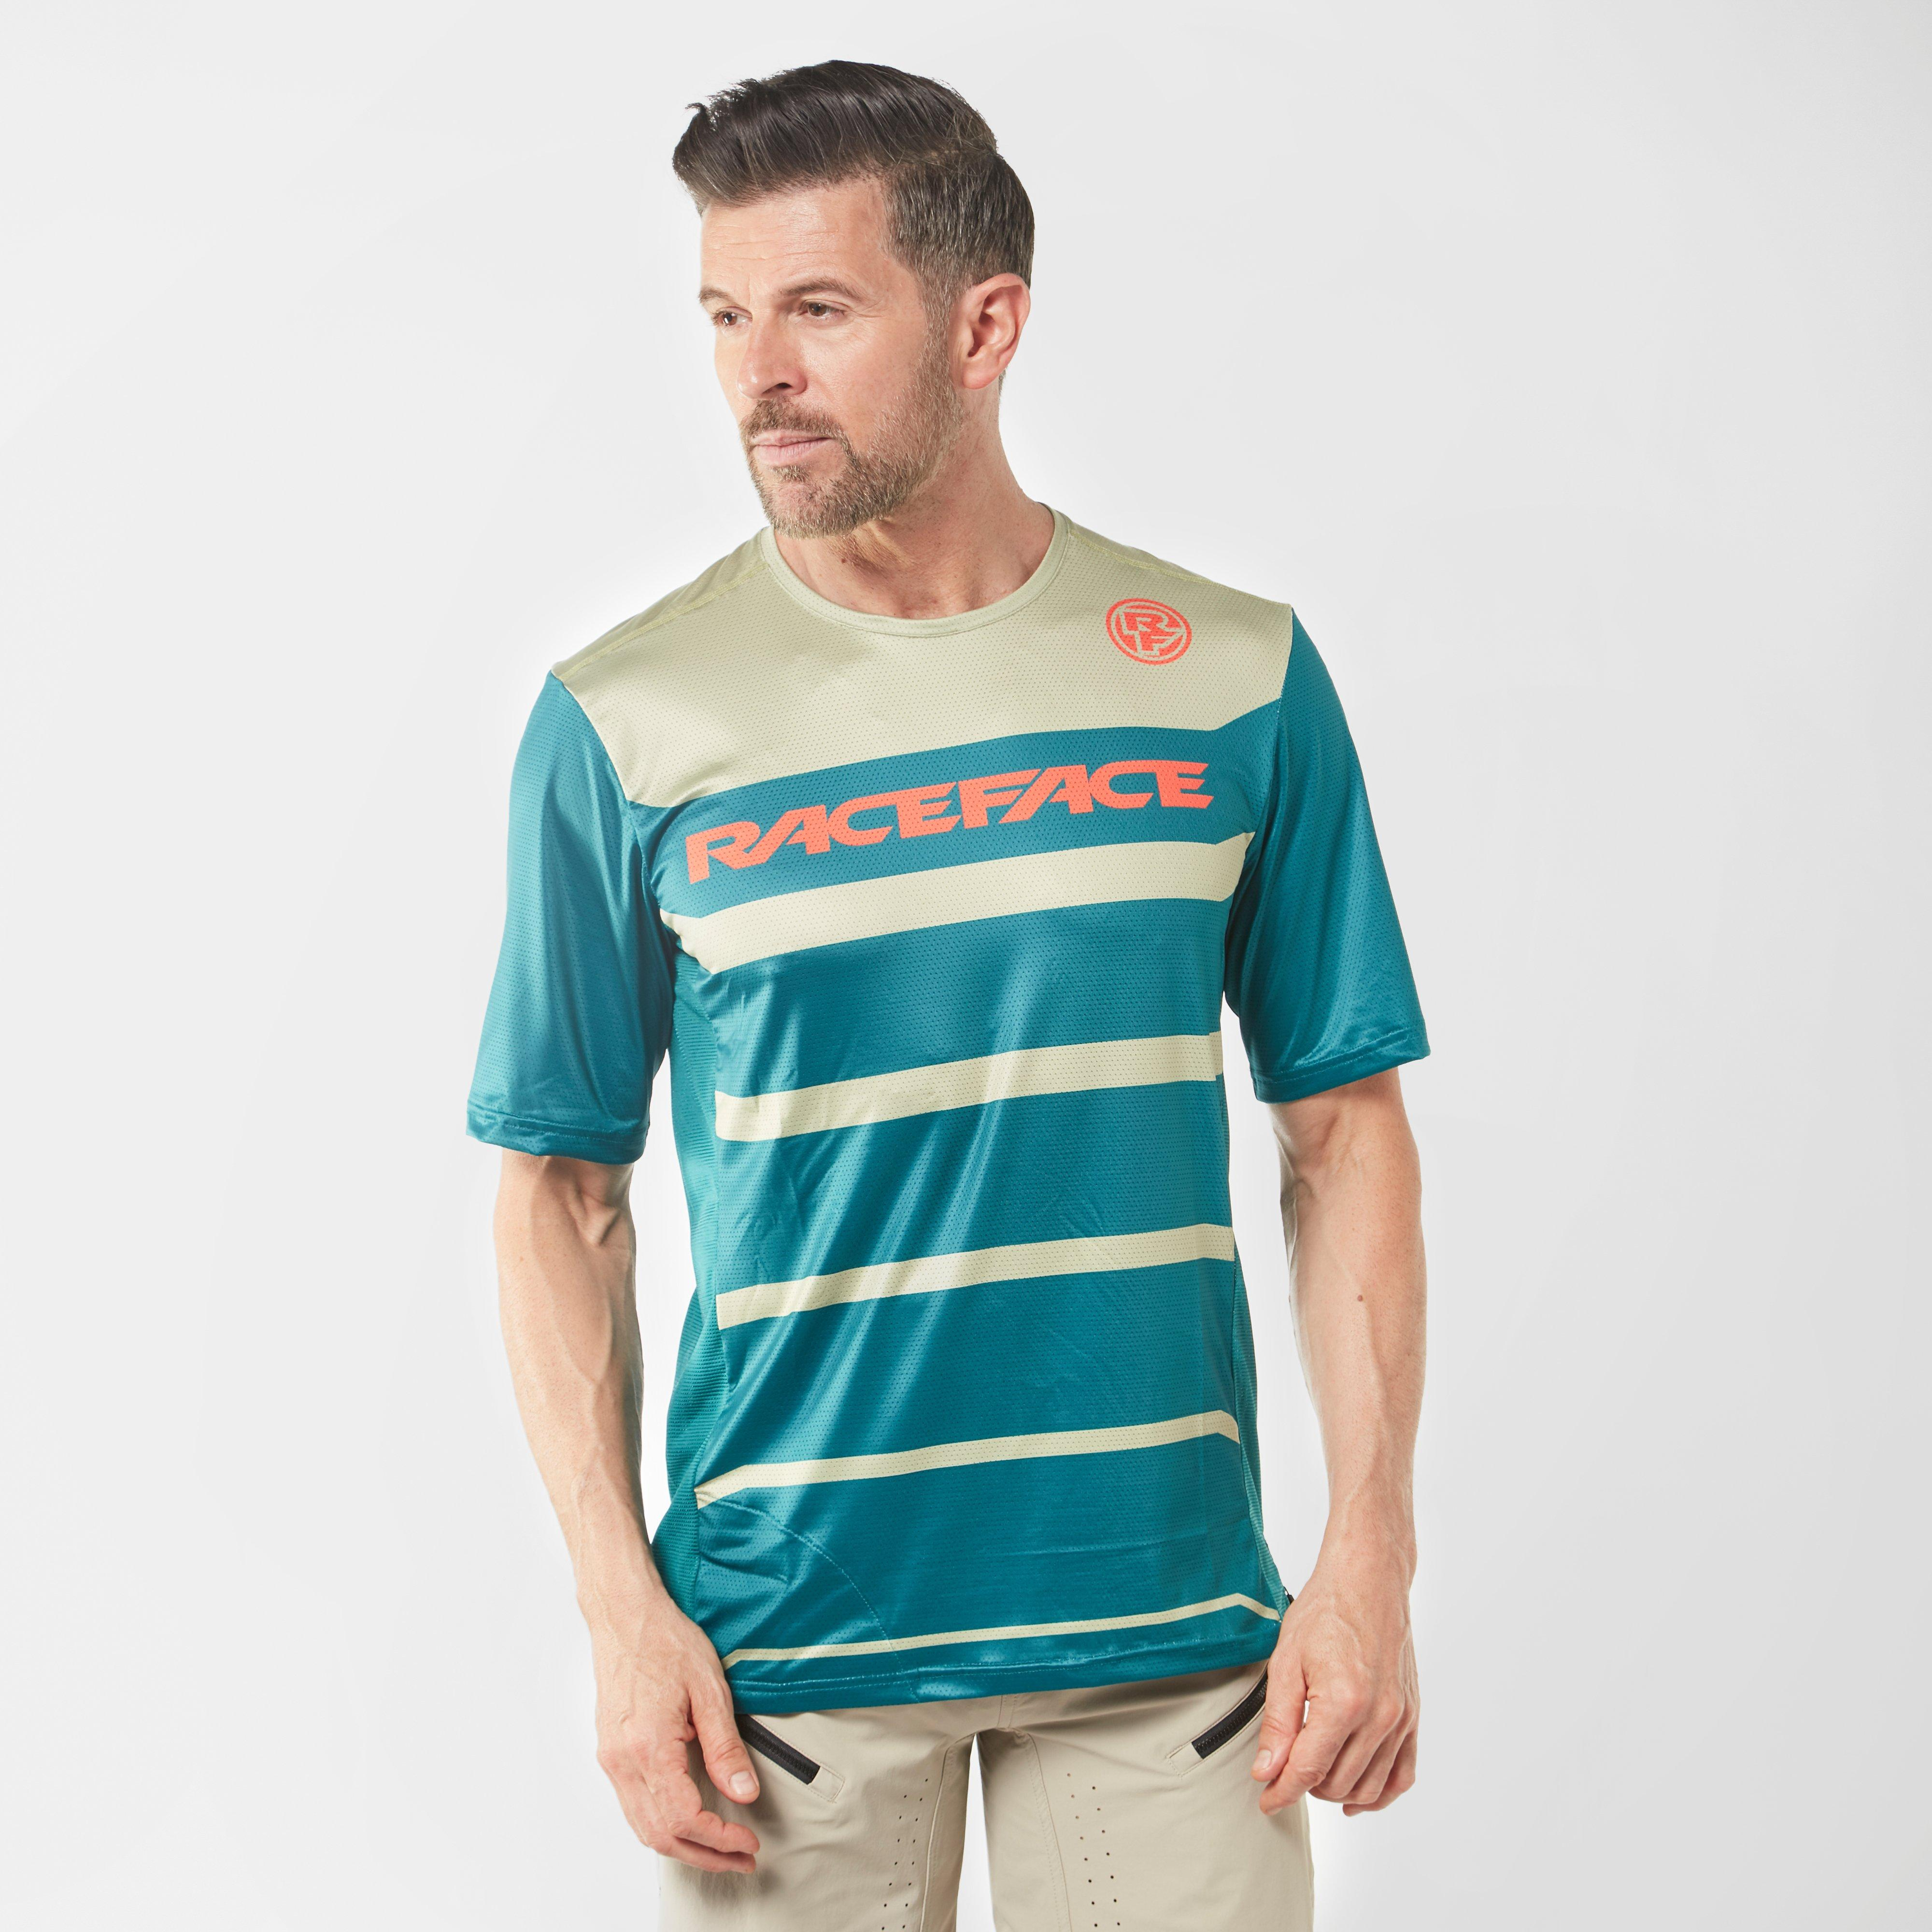 Raceface Raceface Mens Indy Short Sleeve Jersey - Green, Green